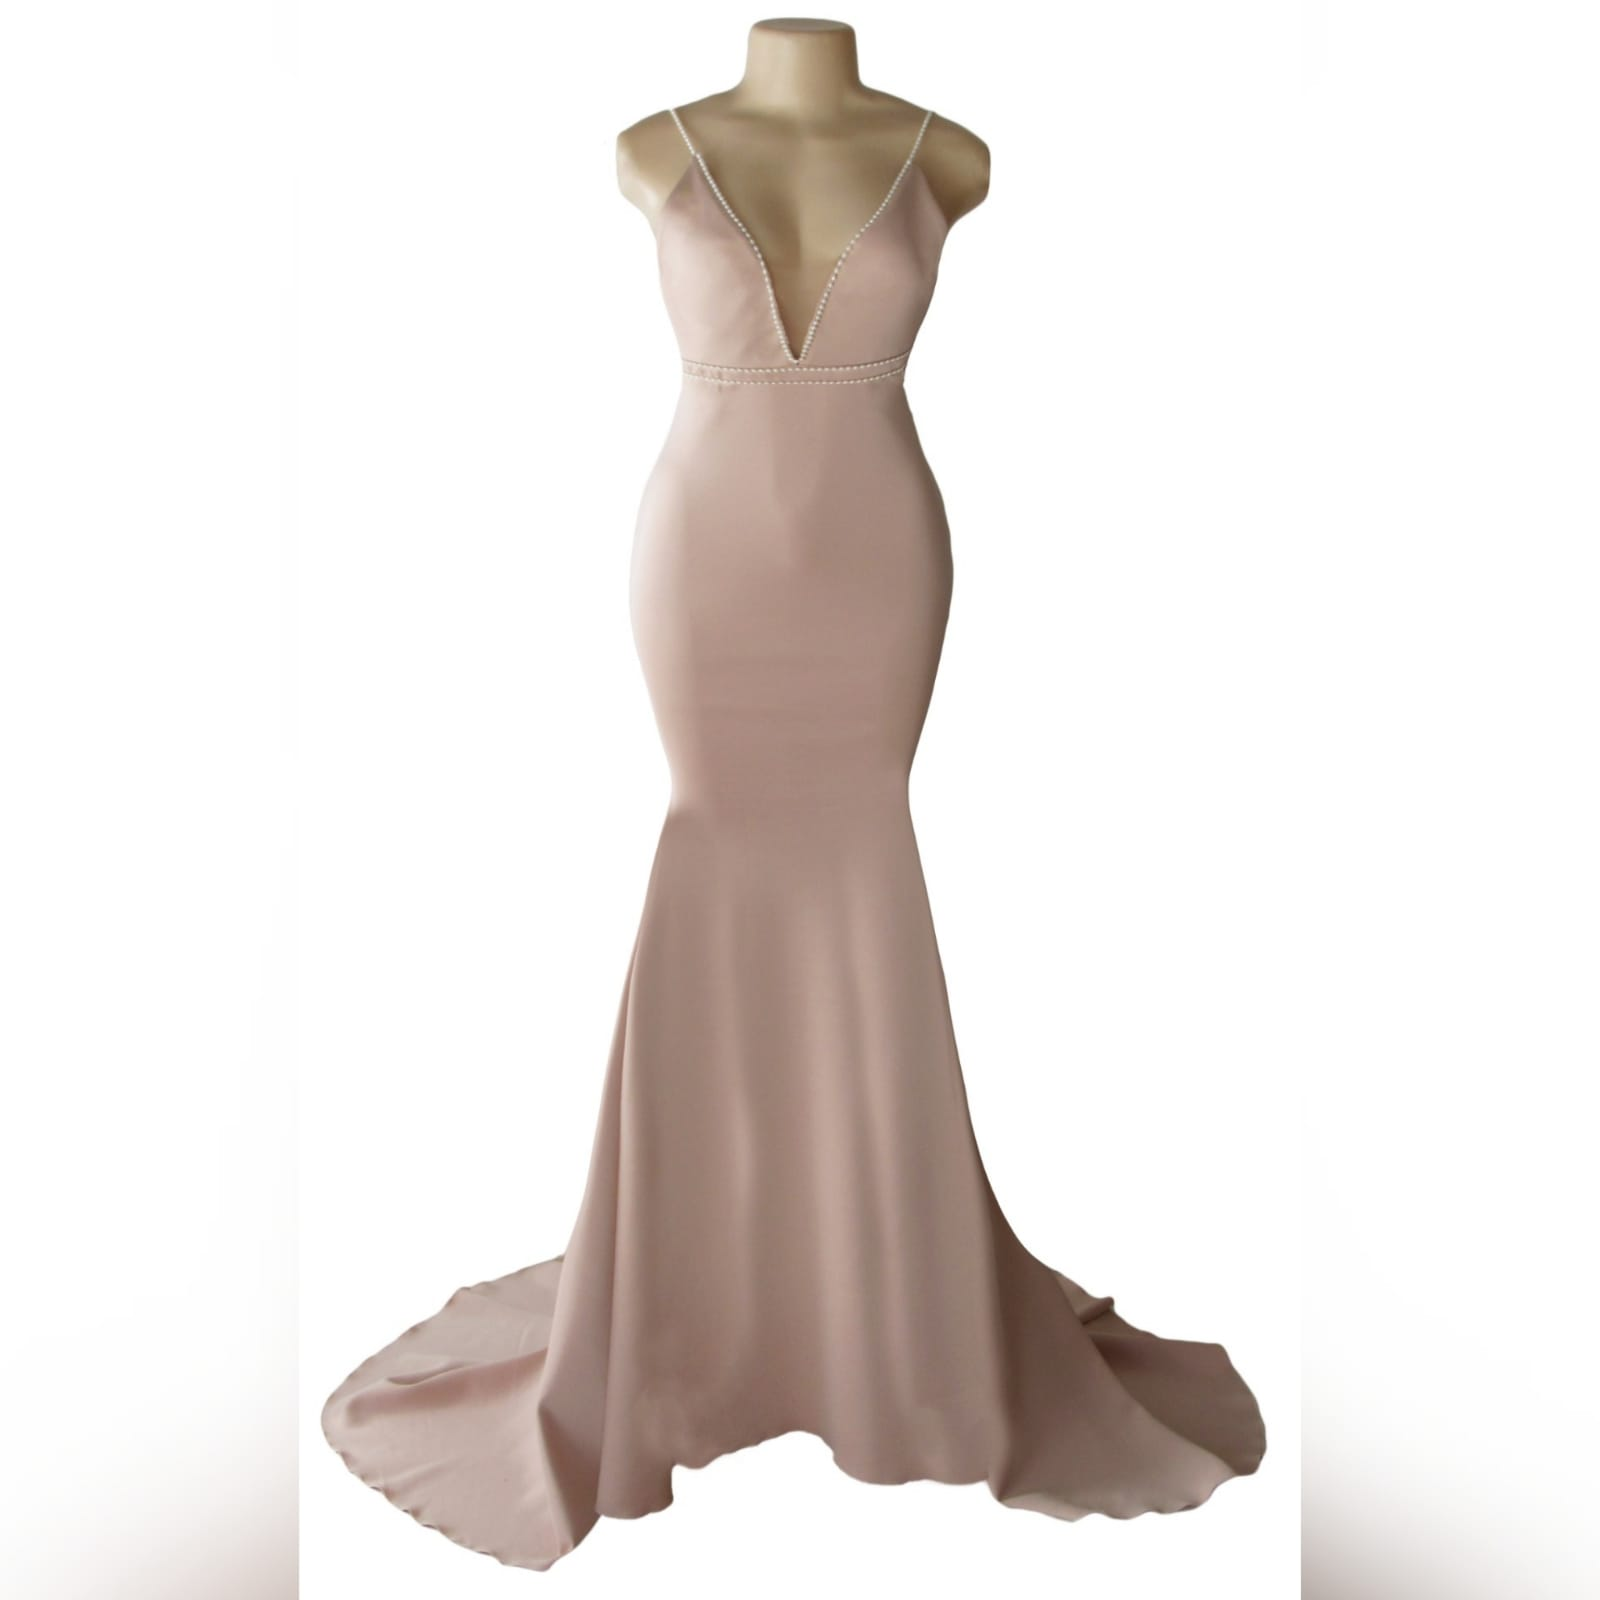 Pink nude soft mermaid prom dress with pearls 5 pink nude soft mermaid prom dress with an illusion plunging neckline, with a low open back, detailed with pearls on the waist and shoulder straps.